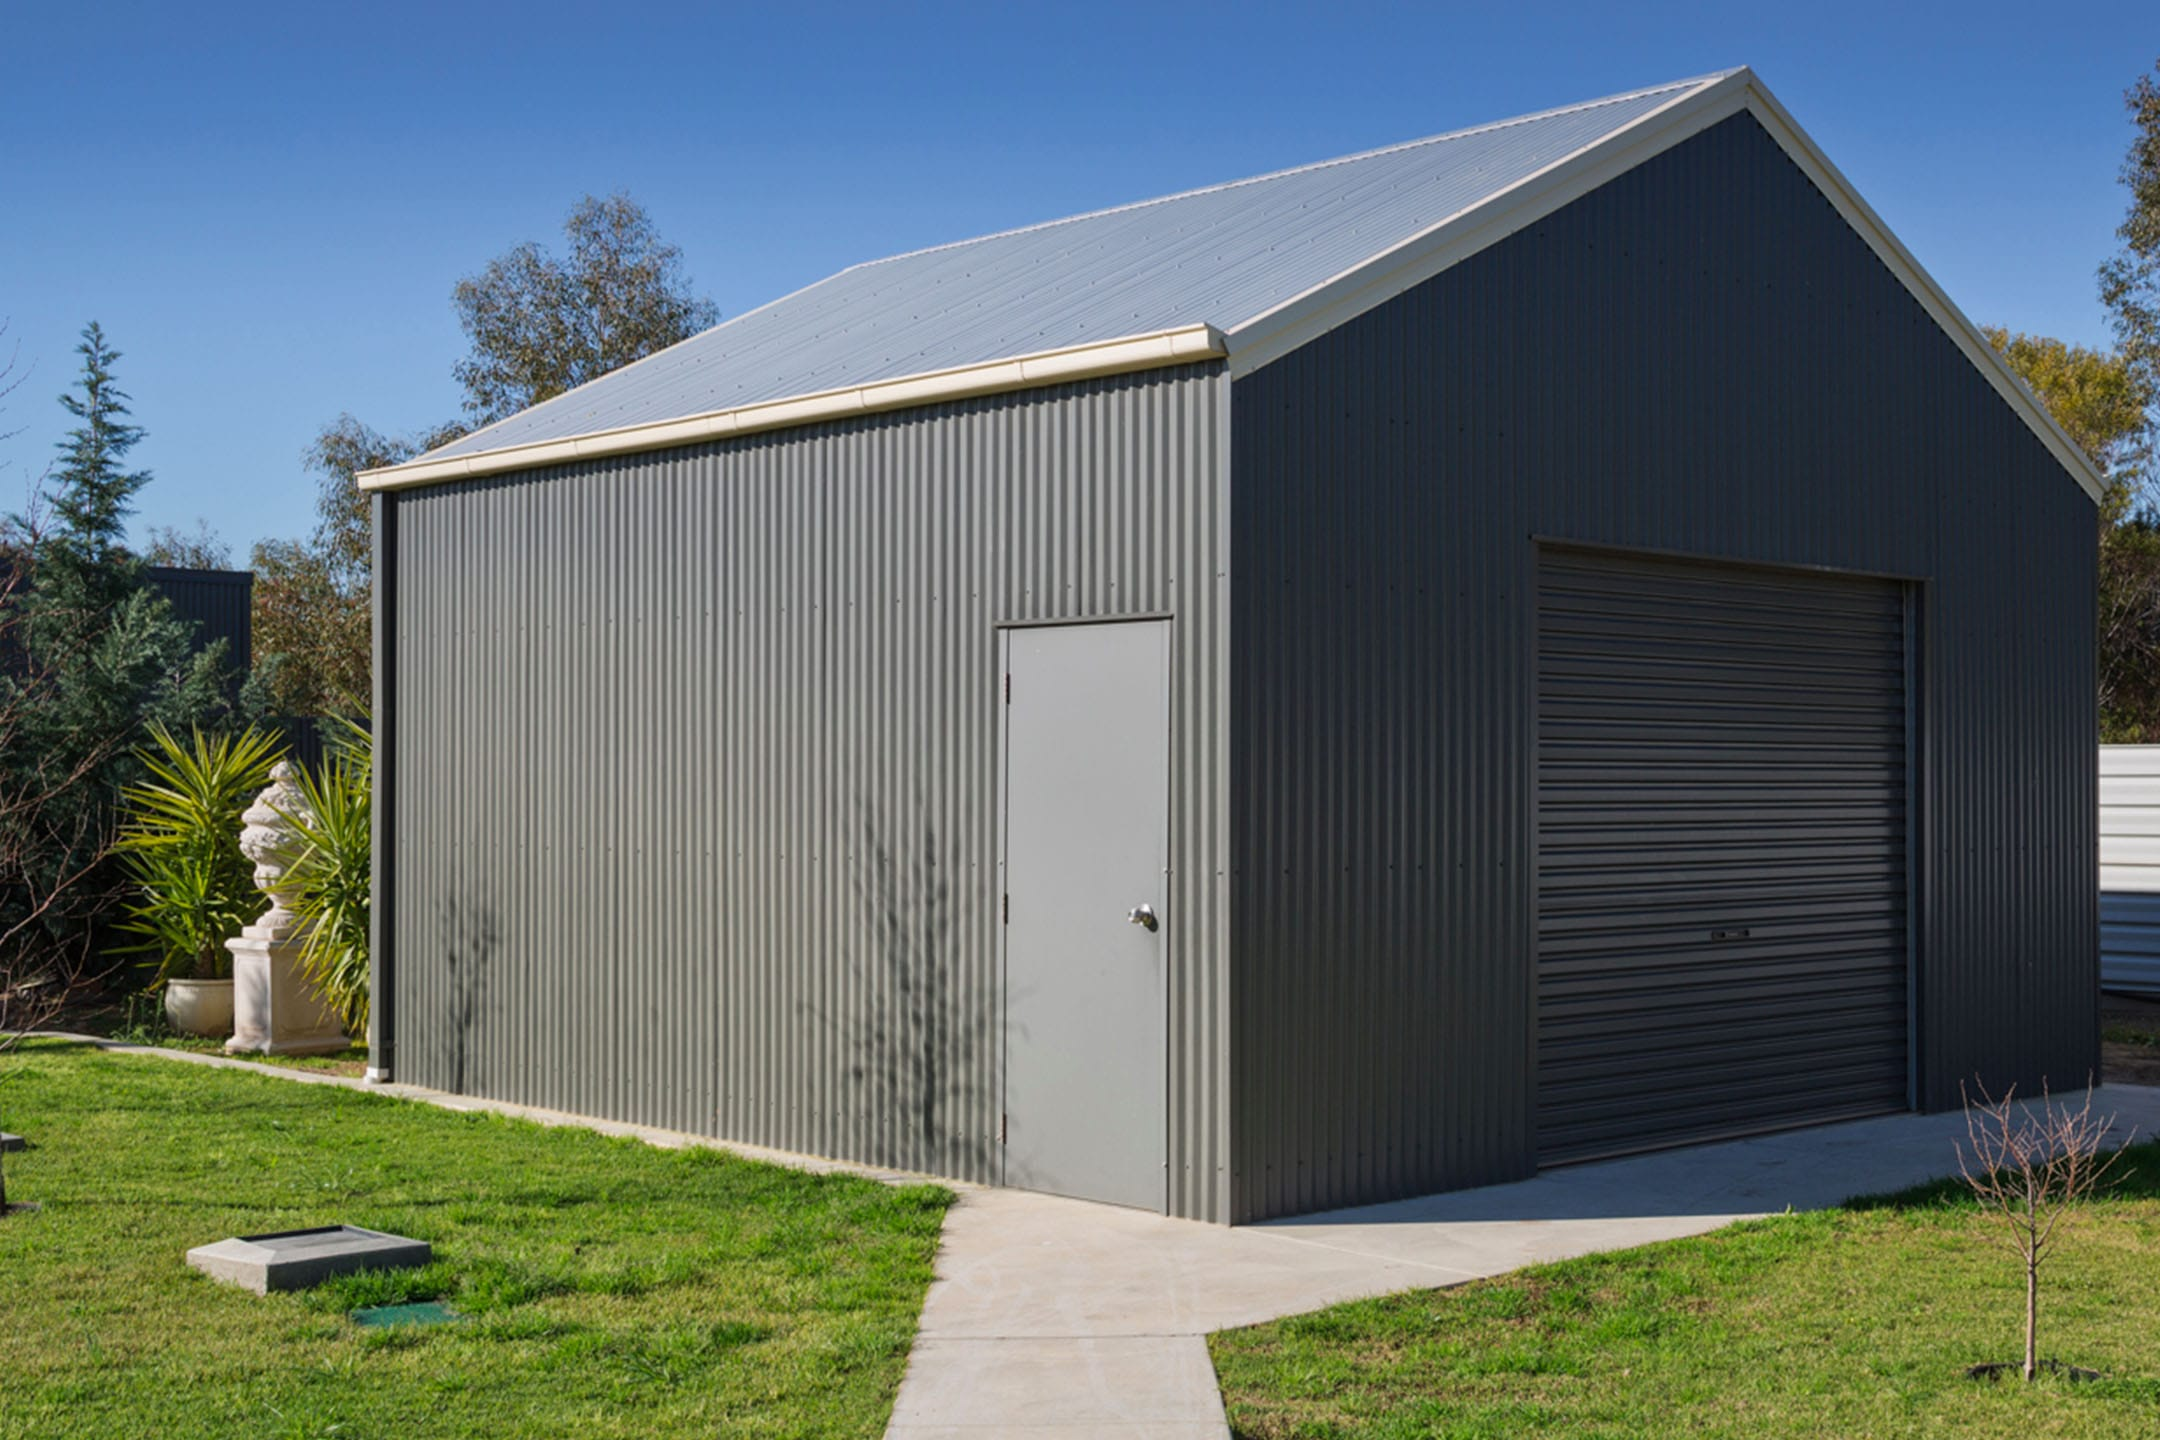 featured big garden shed - Garden Sheds Victoria